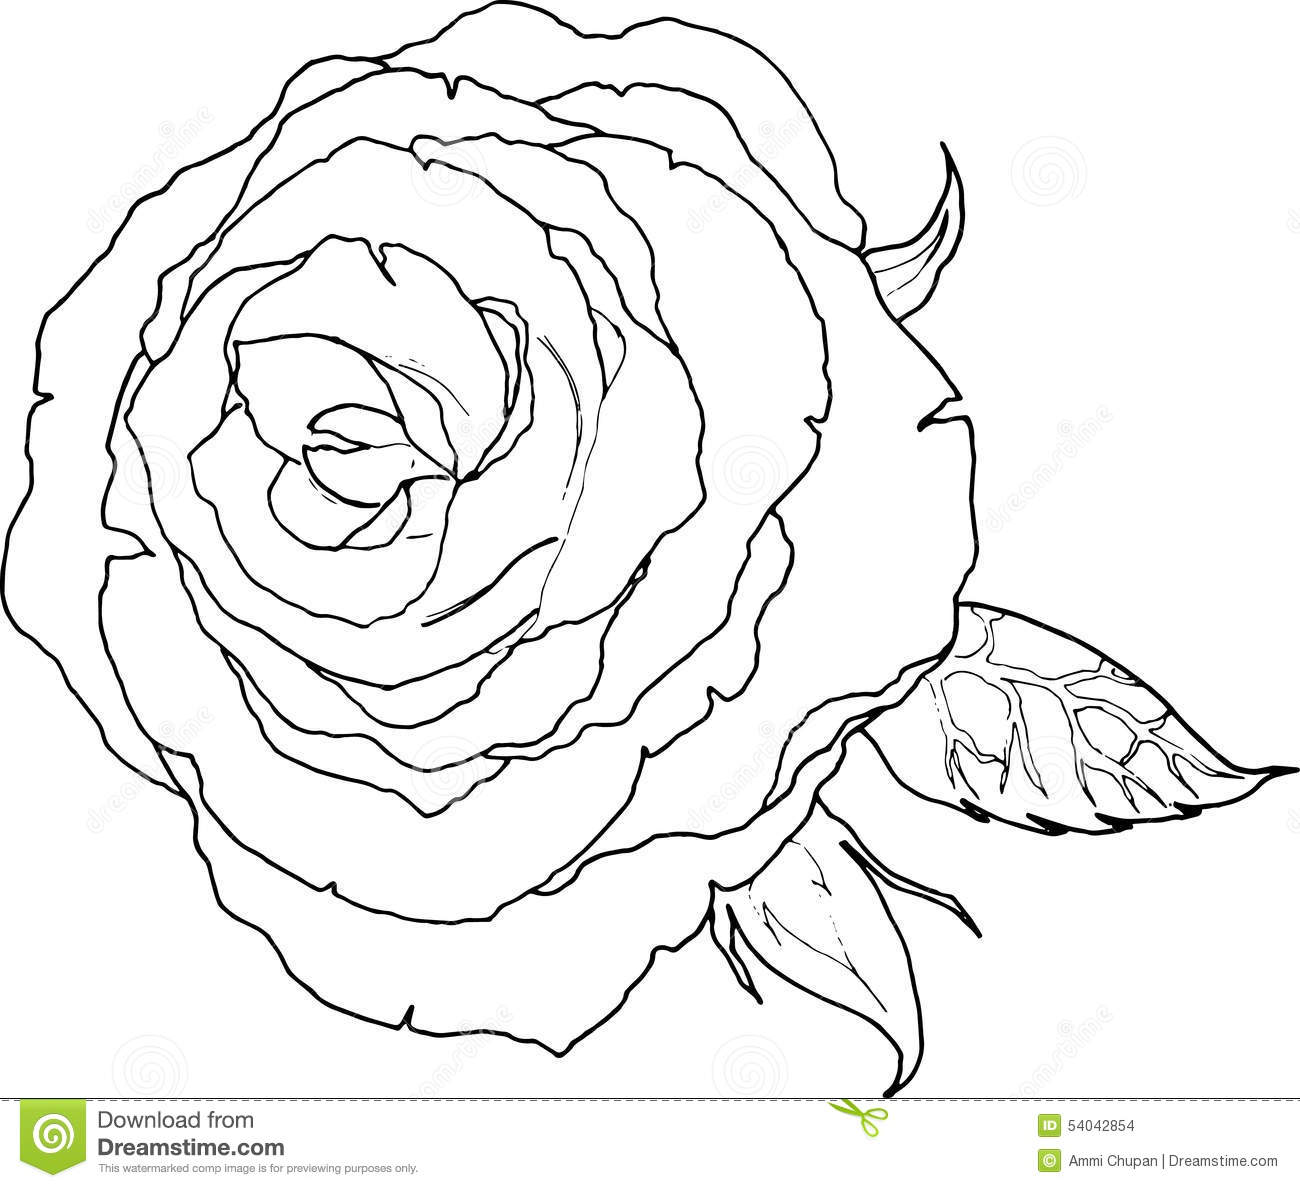 Line Art Drawing Of A Rose Flower Black And White Color Stock